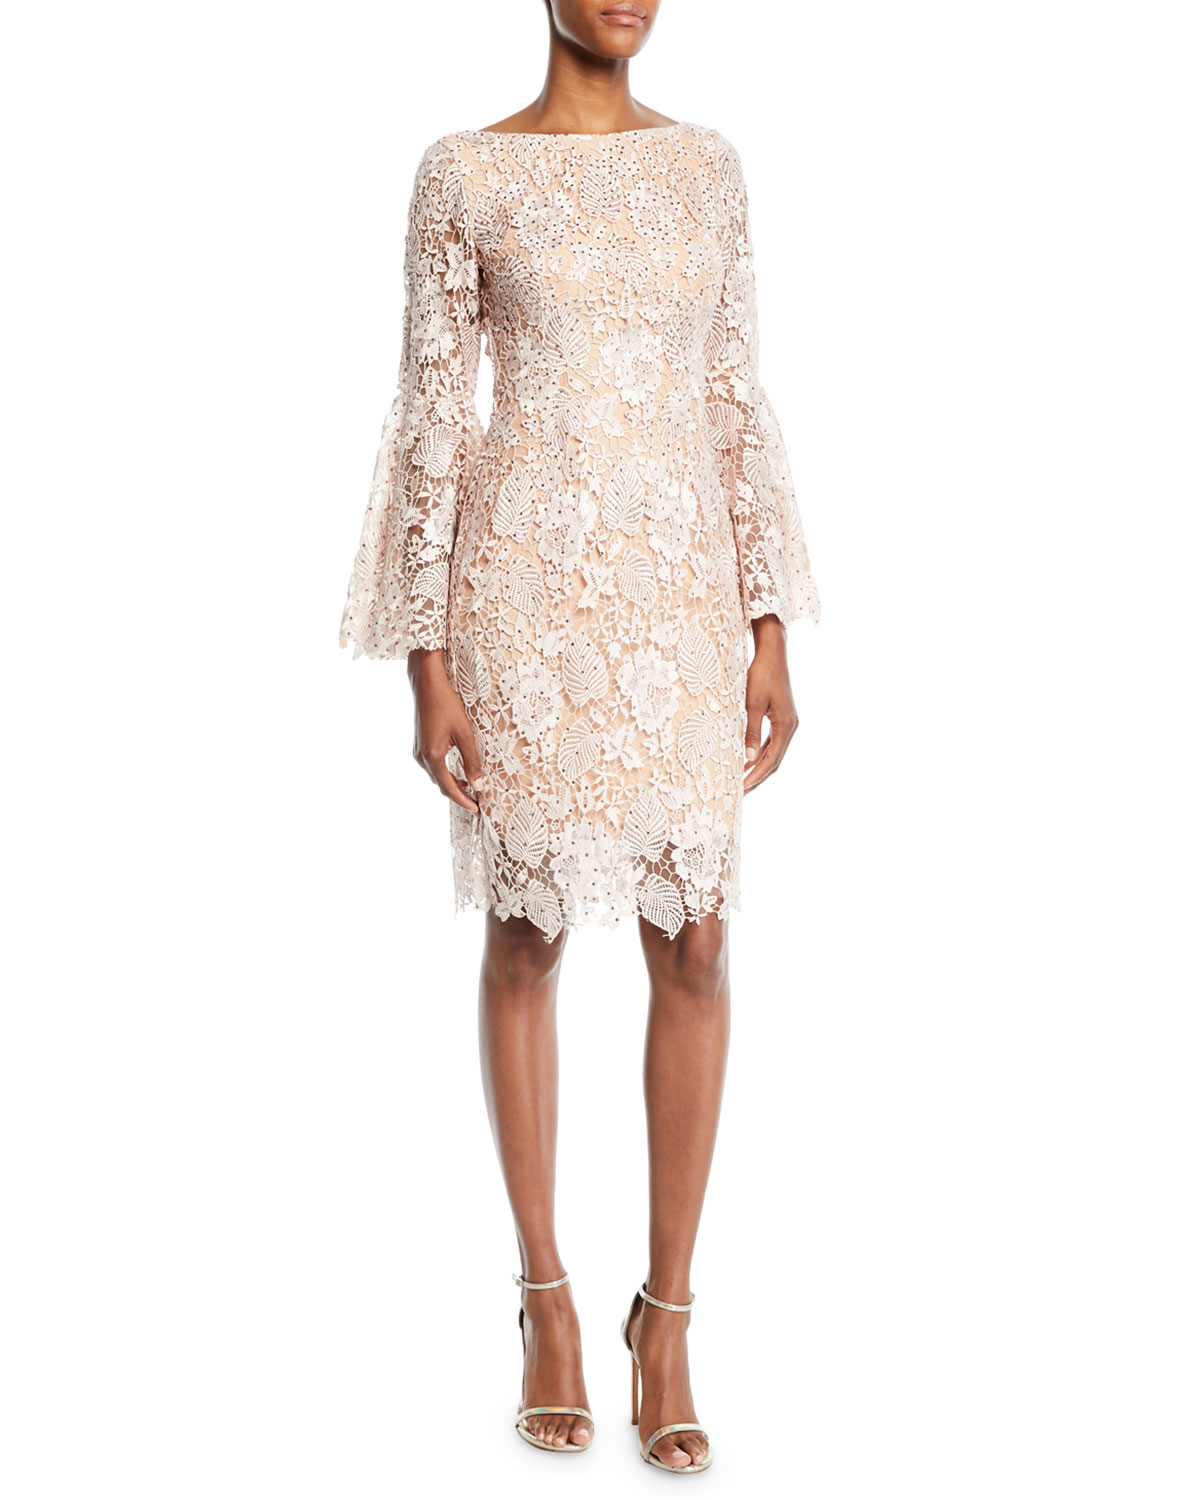 d40ee3cef Jovani Scalloped Lace Cocktail Dress w  Trumpet Sleeves